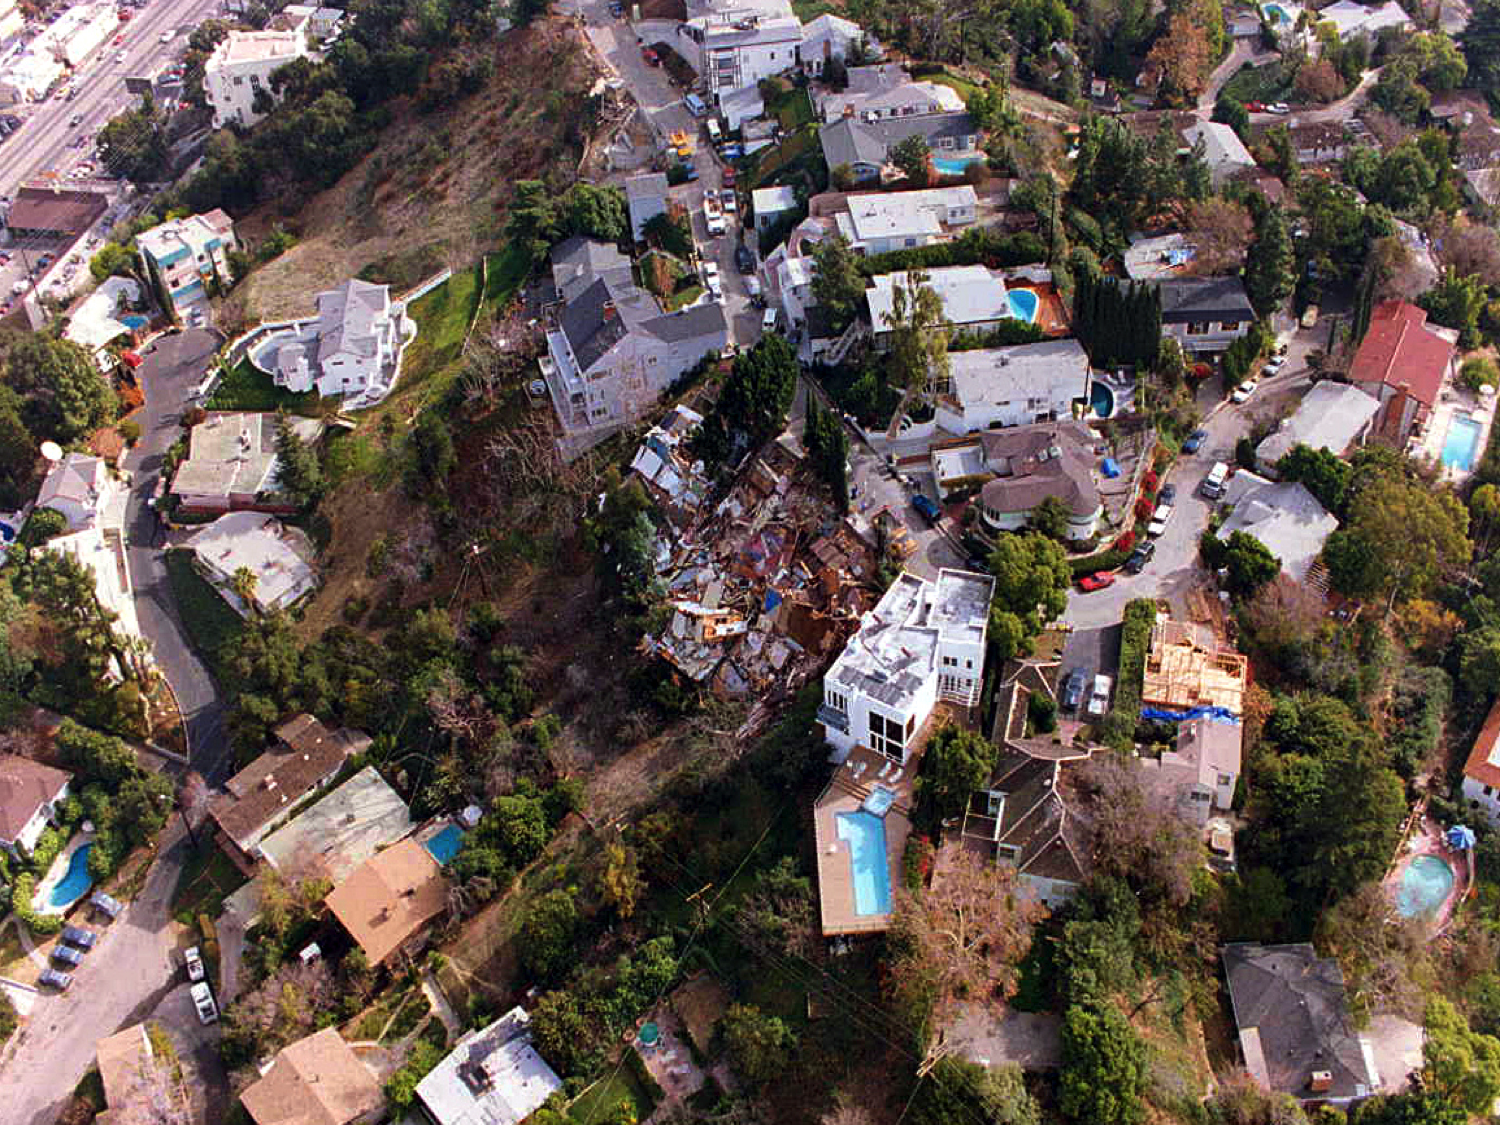 Hillside homes after the earthquake